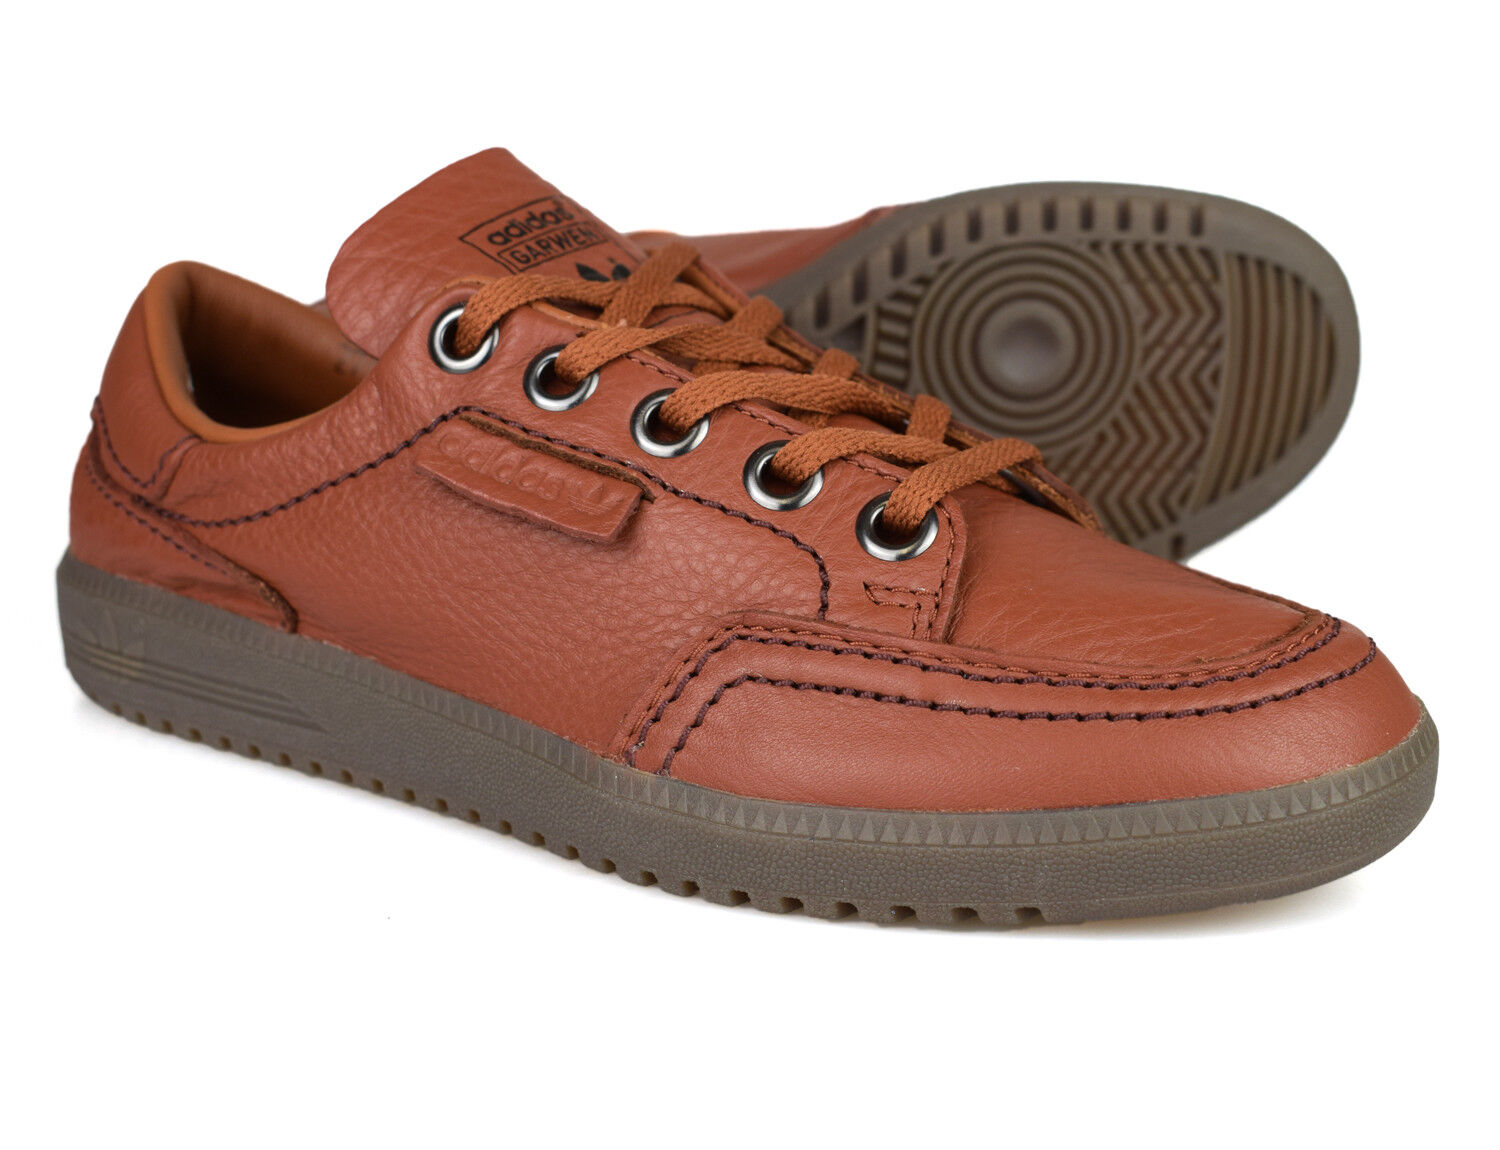 Adidas Originals SPZL Spezial Garwen Brown Leather Trainers BA7724